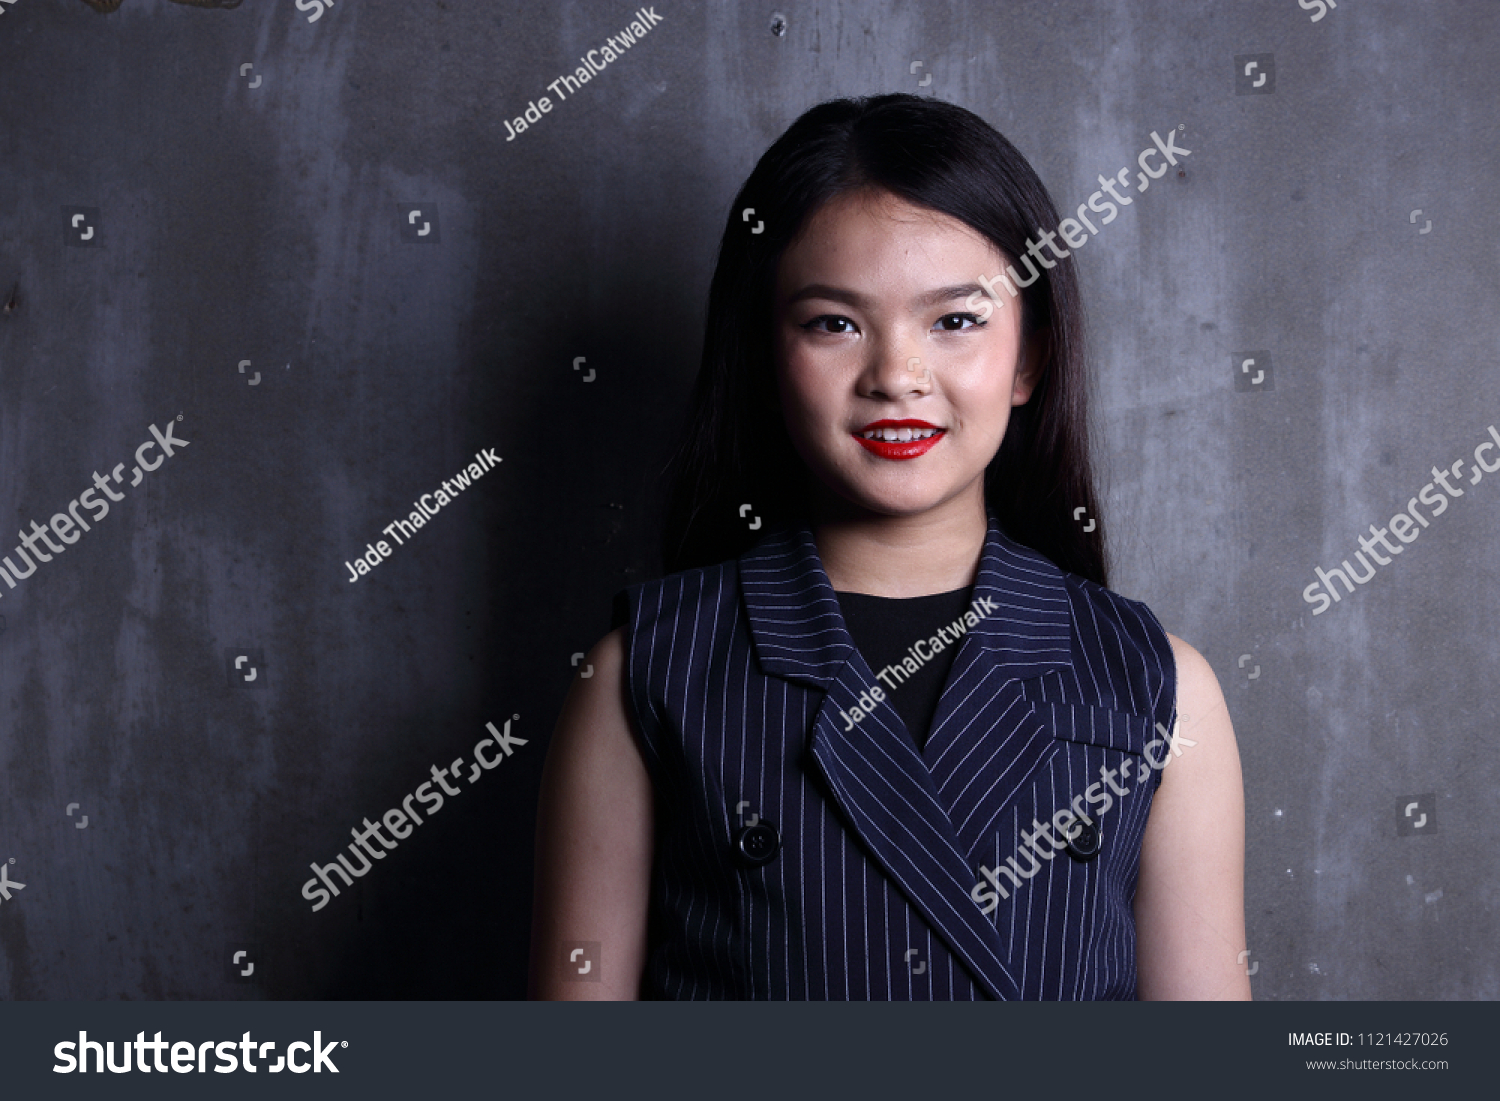 Business Kid Girl in formal suit stand on dark abstract background, studio lighting copy space for text logo, black hair eleven years old portrait half body, Fashion Face Eyes Heart Summer #1121427026